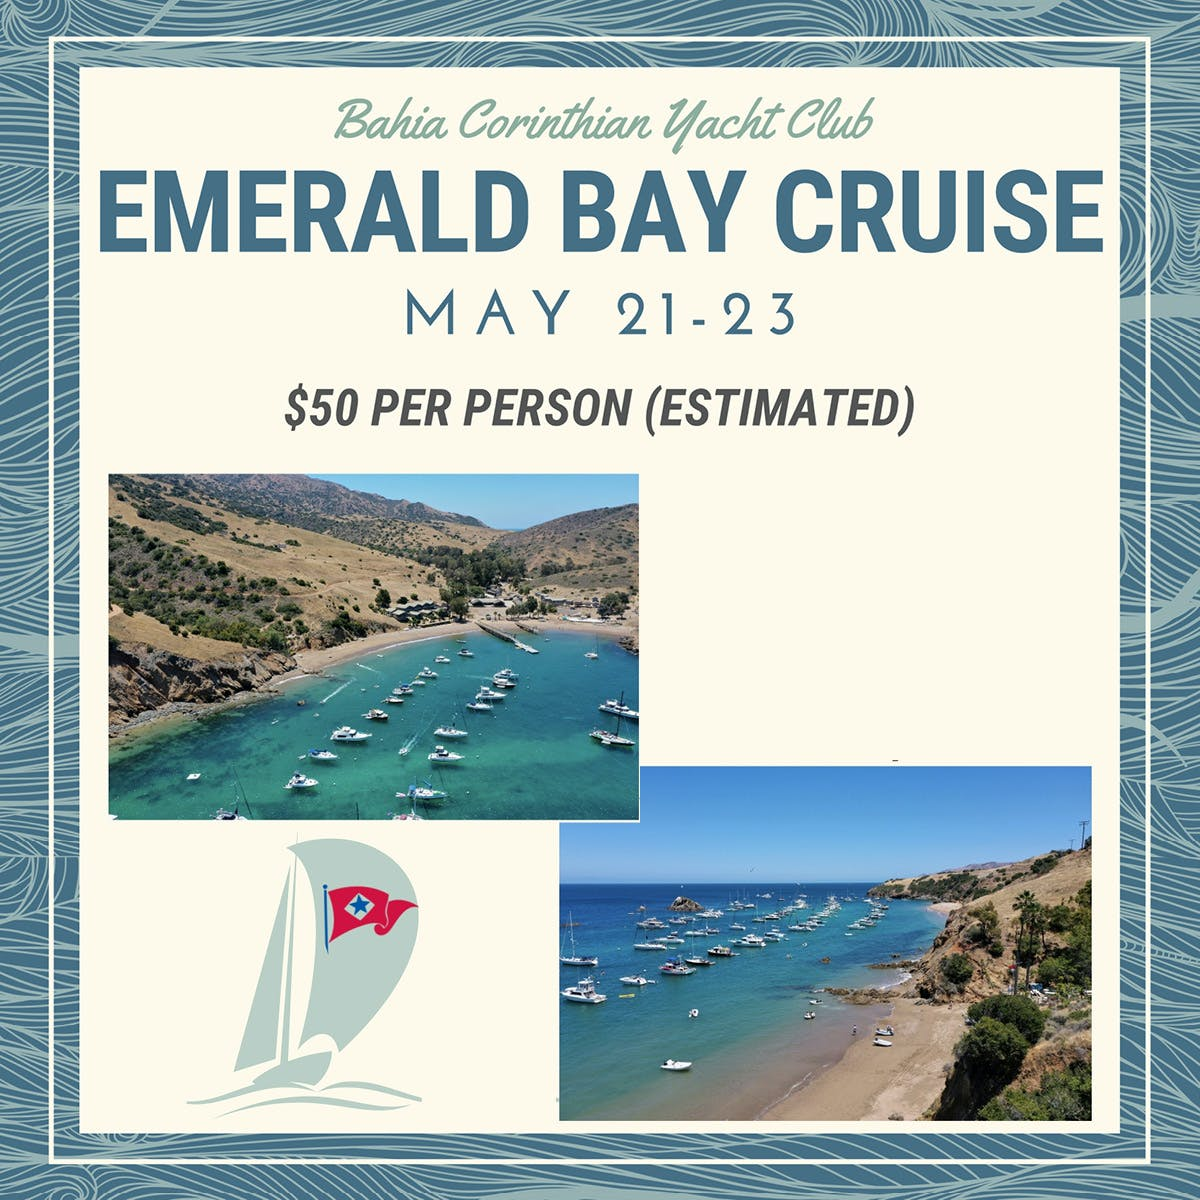 Emerald Bay Cruise